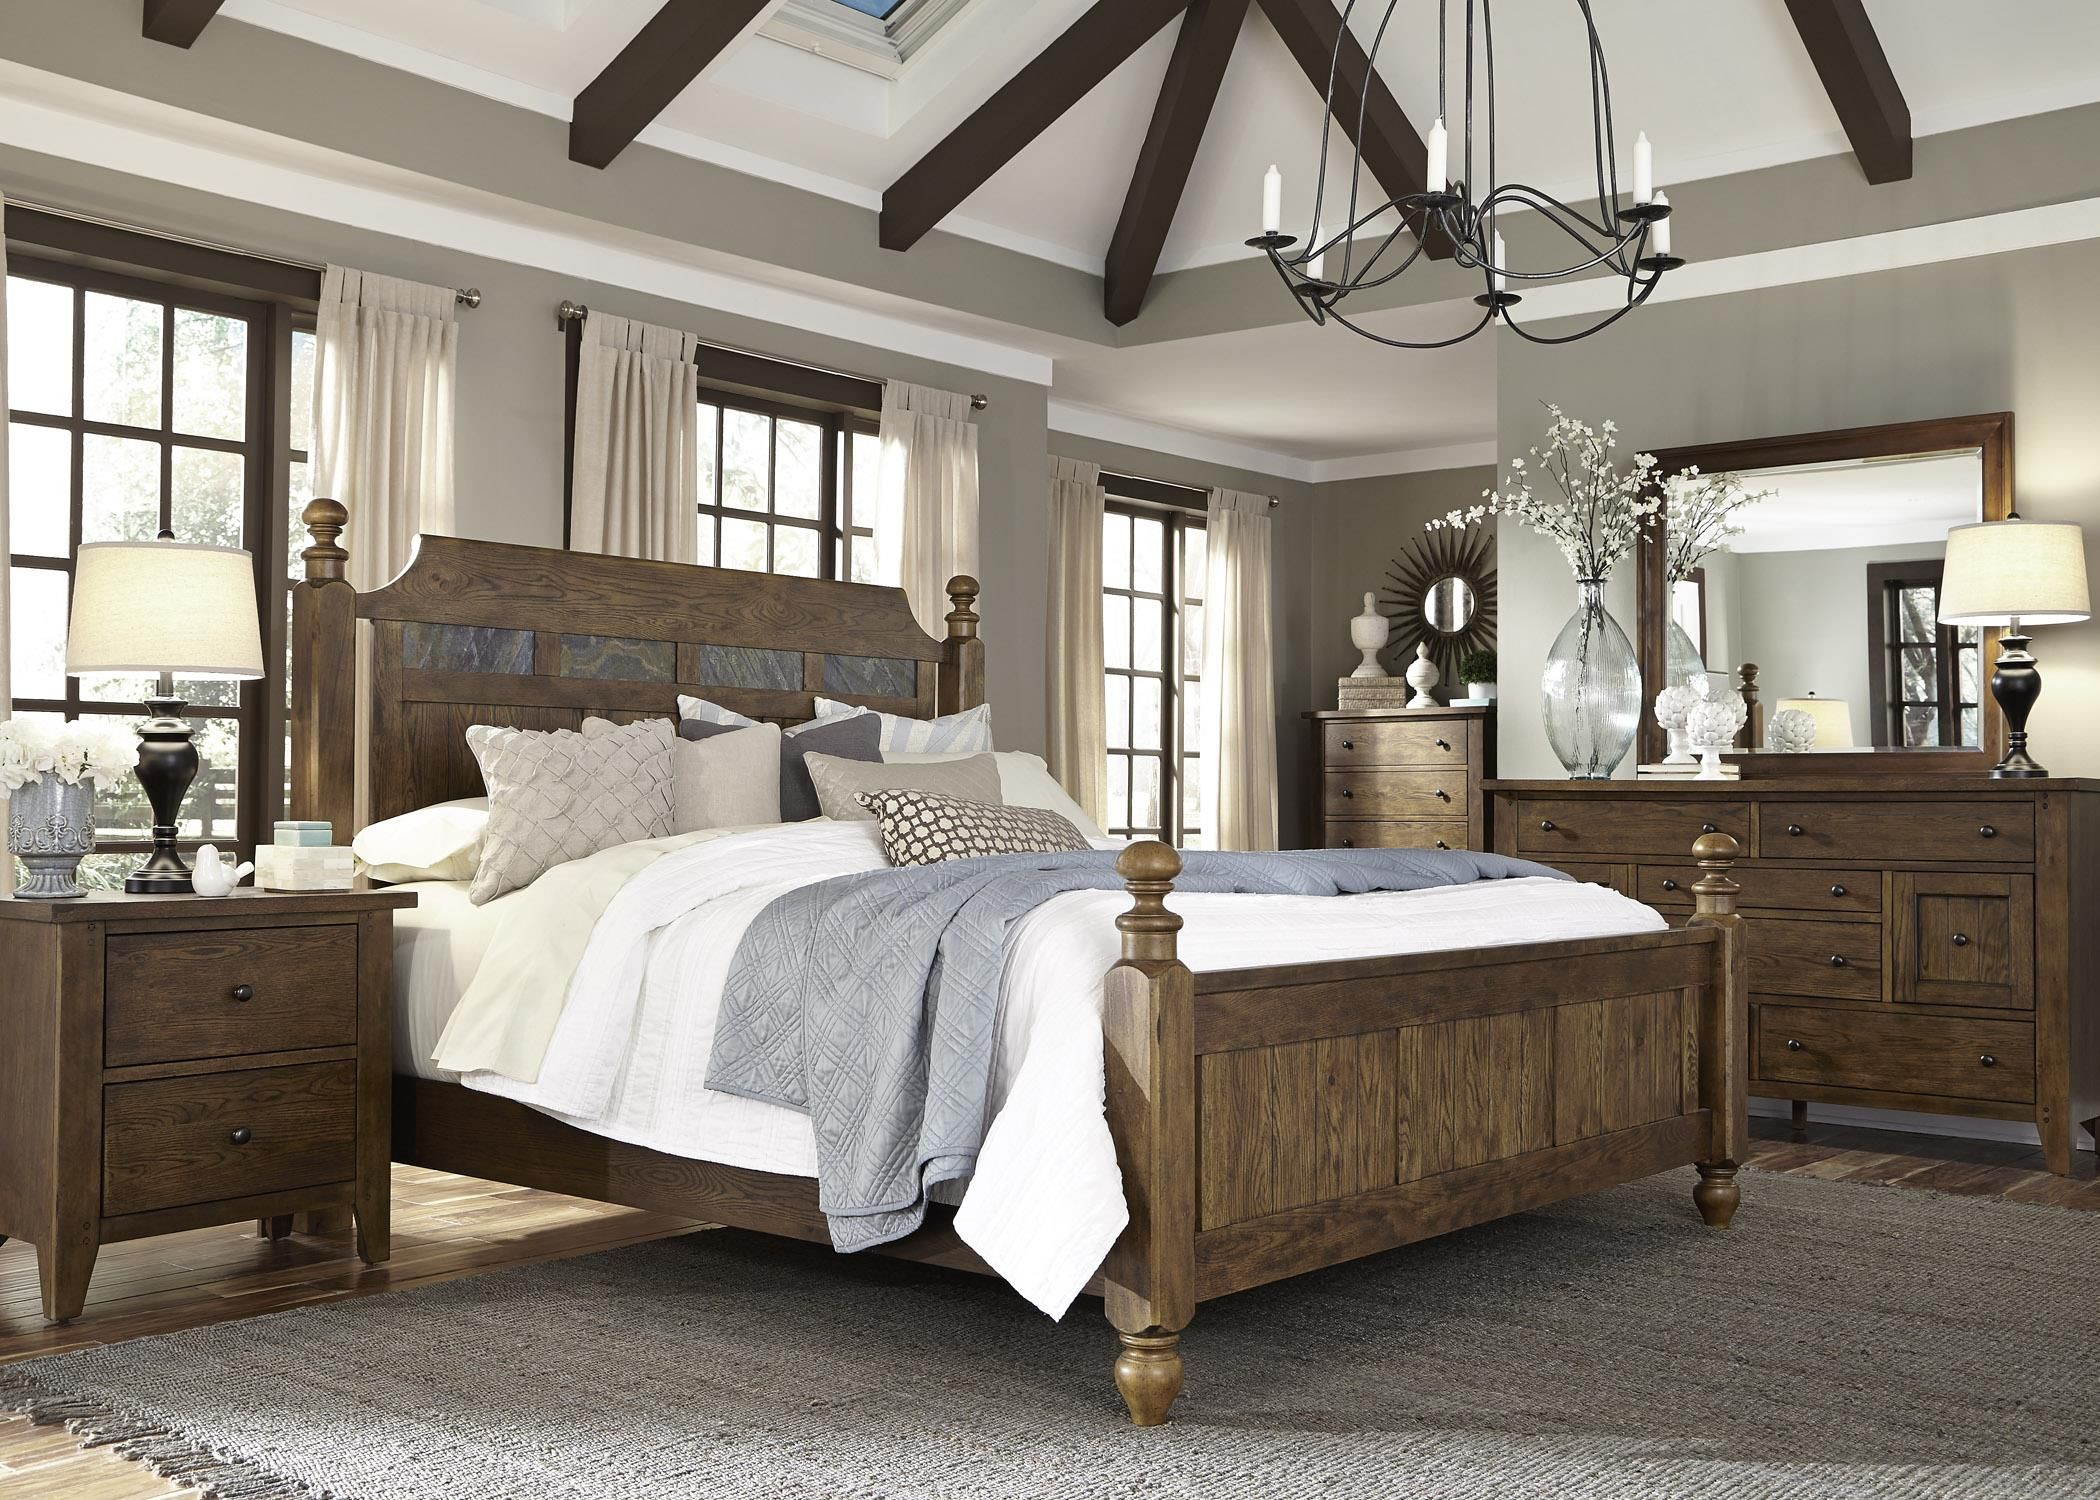 hearthstone king bedroom group by liberty furniture ideas for home